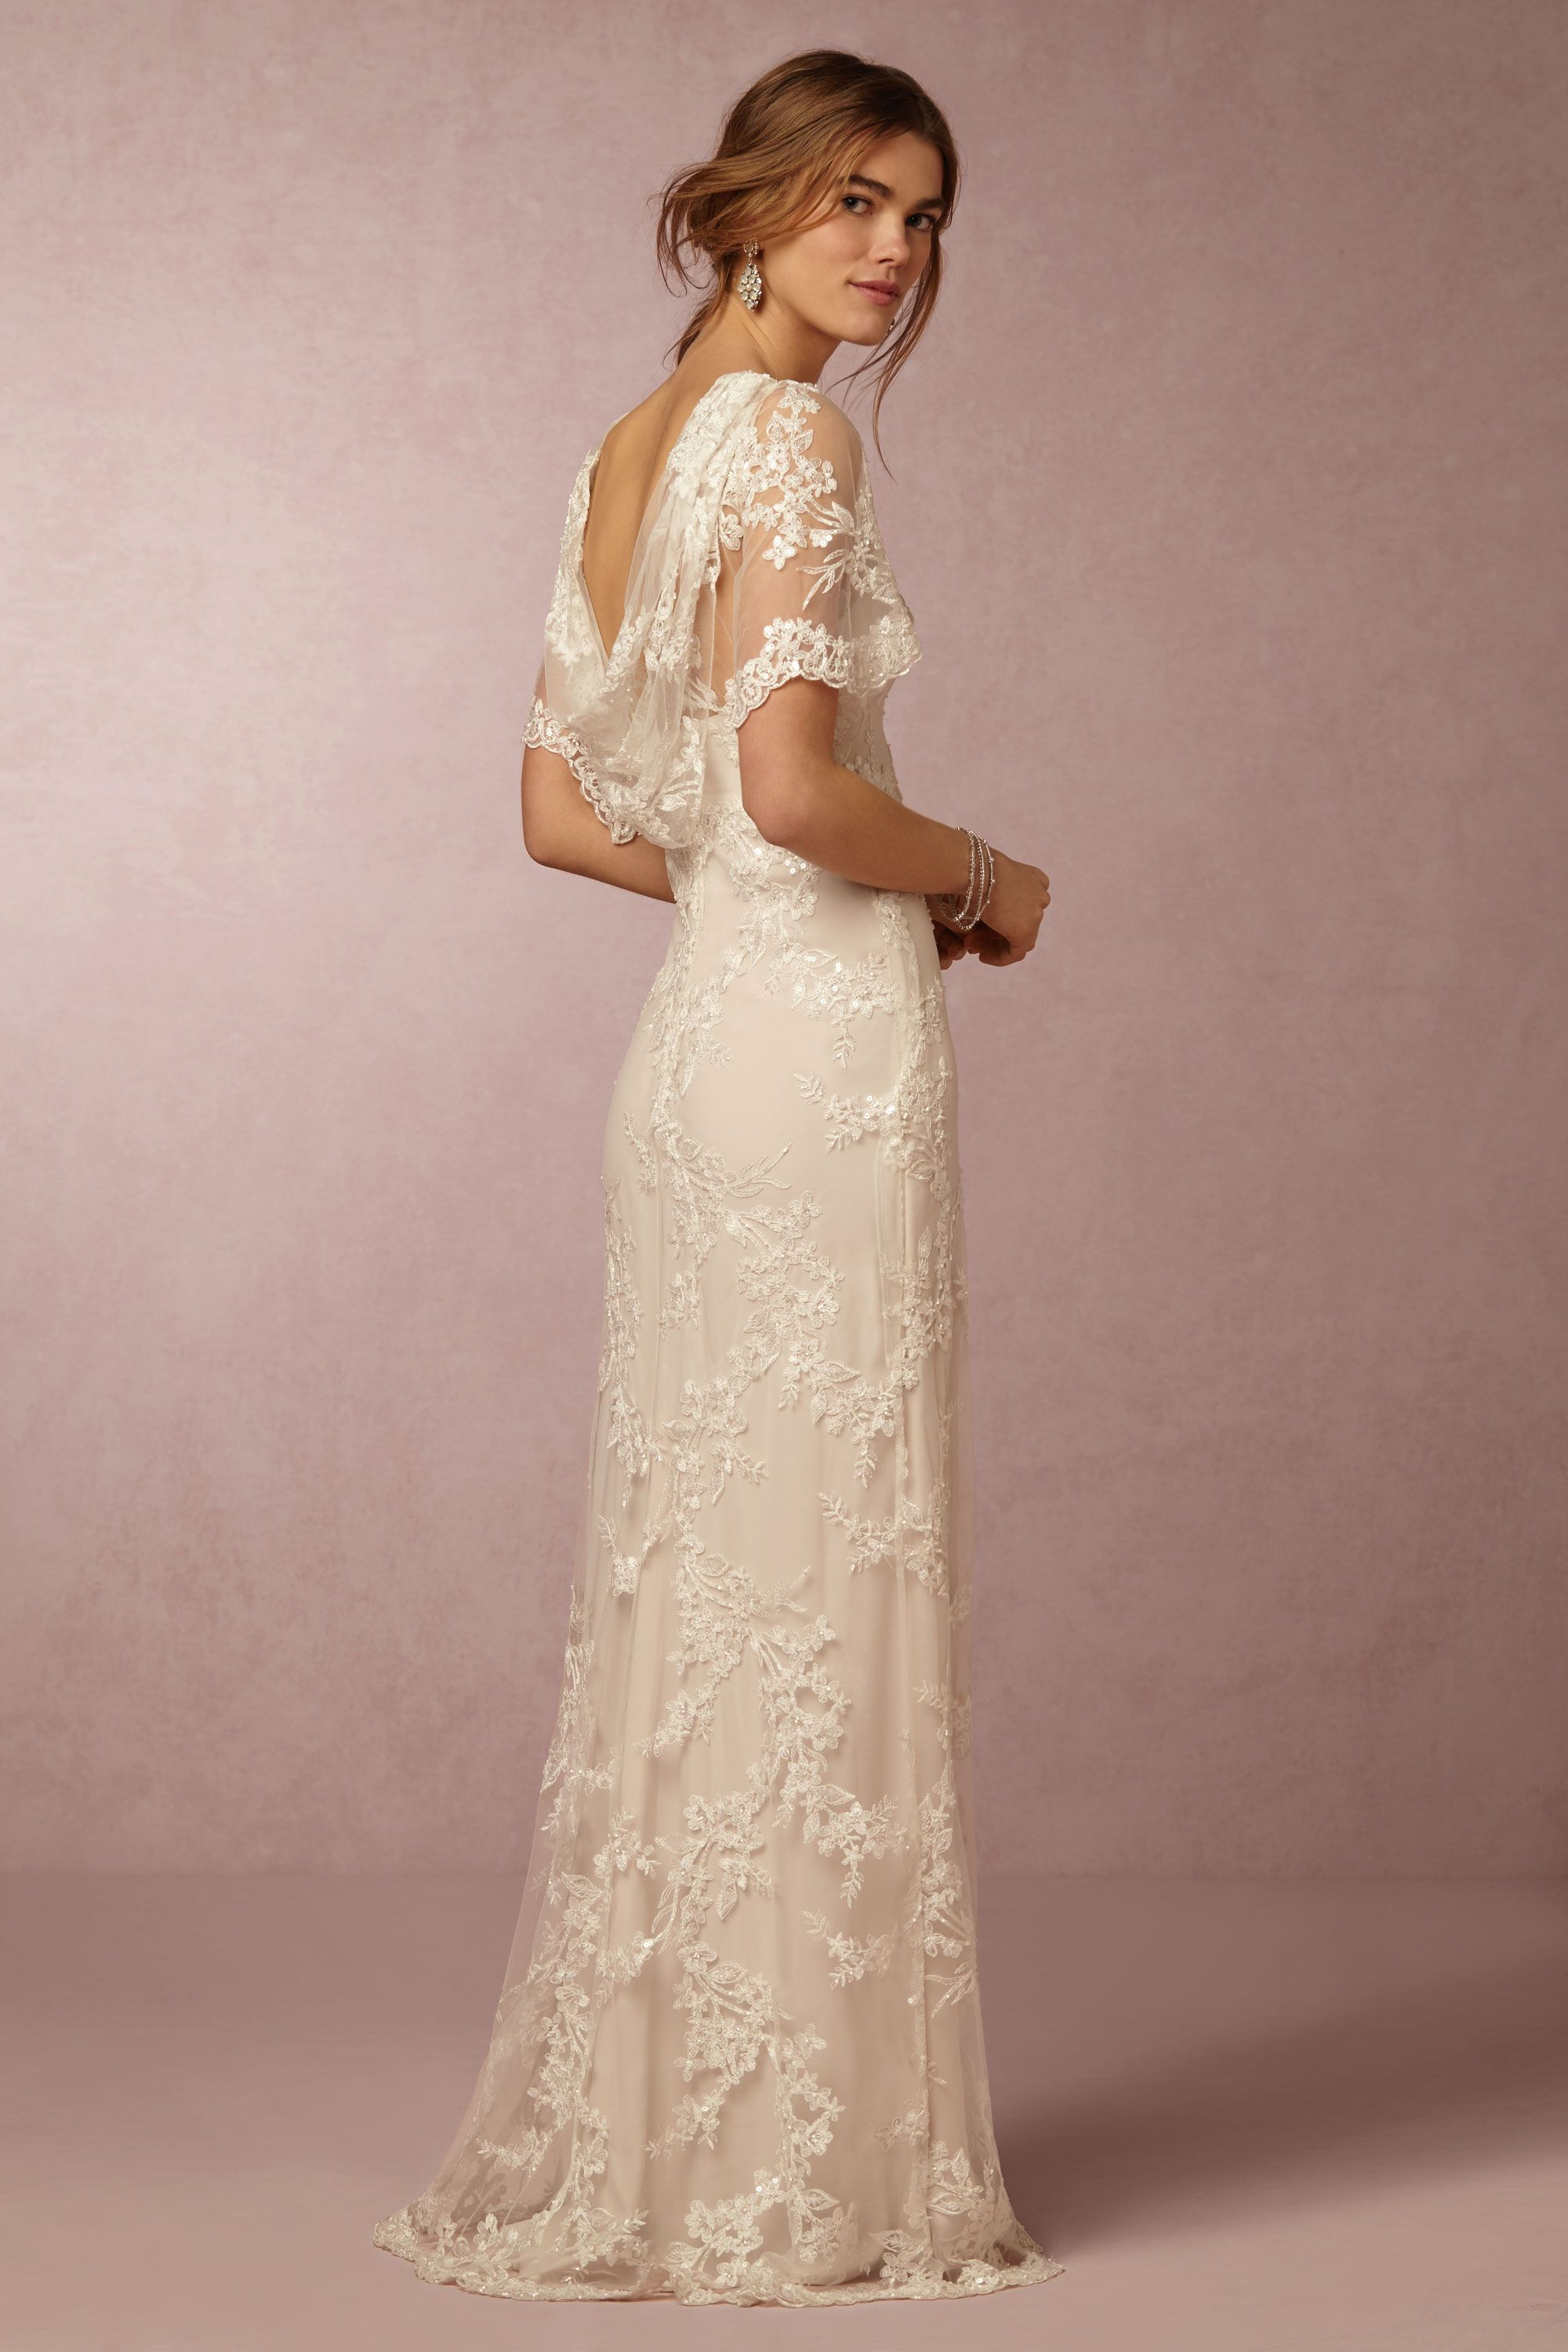 estella gown affordable wedding dresses Marchesa Notte Ivory Estella Gown BHLDN